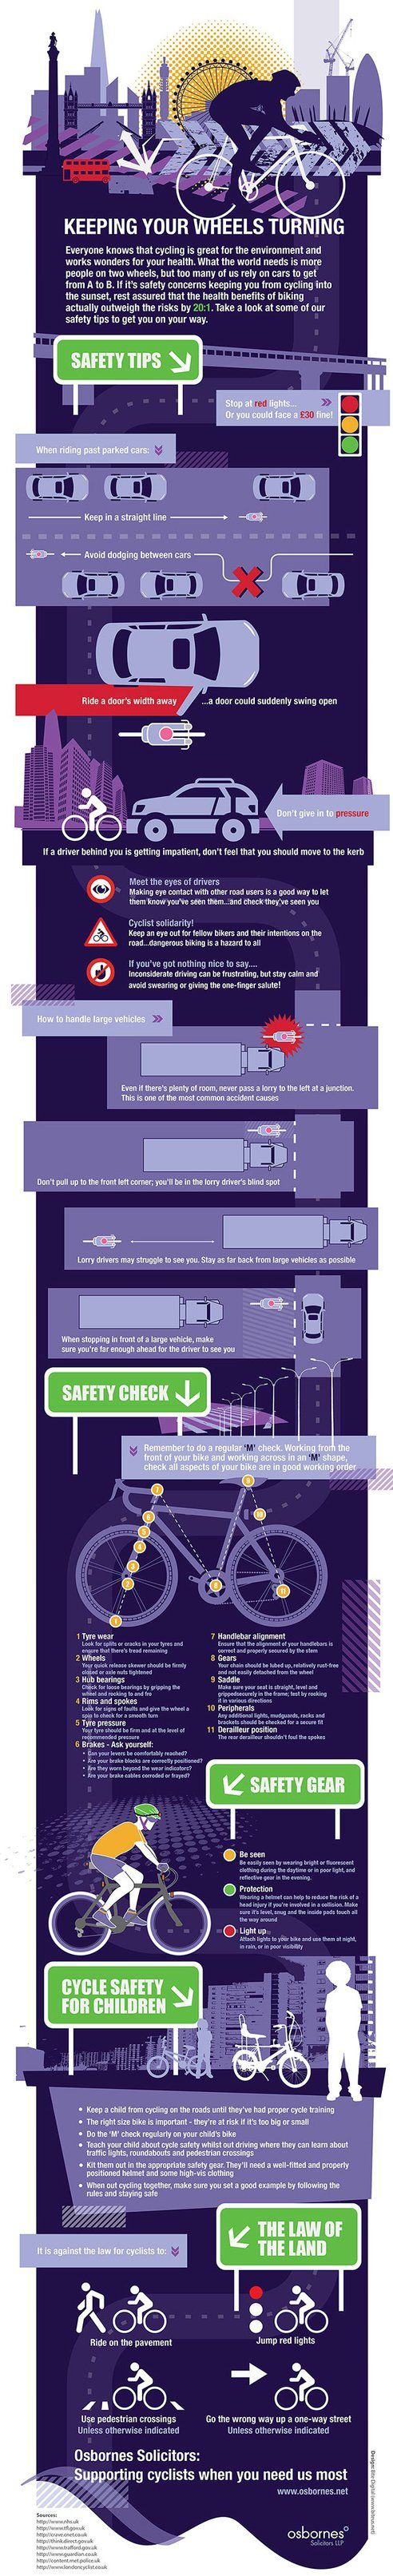 British infographic on safer cycling that includes good tips on maintenance and safe riding (remember that the UK and Australians drive on the left hand side and some advice needs to be switched for a US audience)